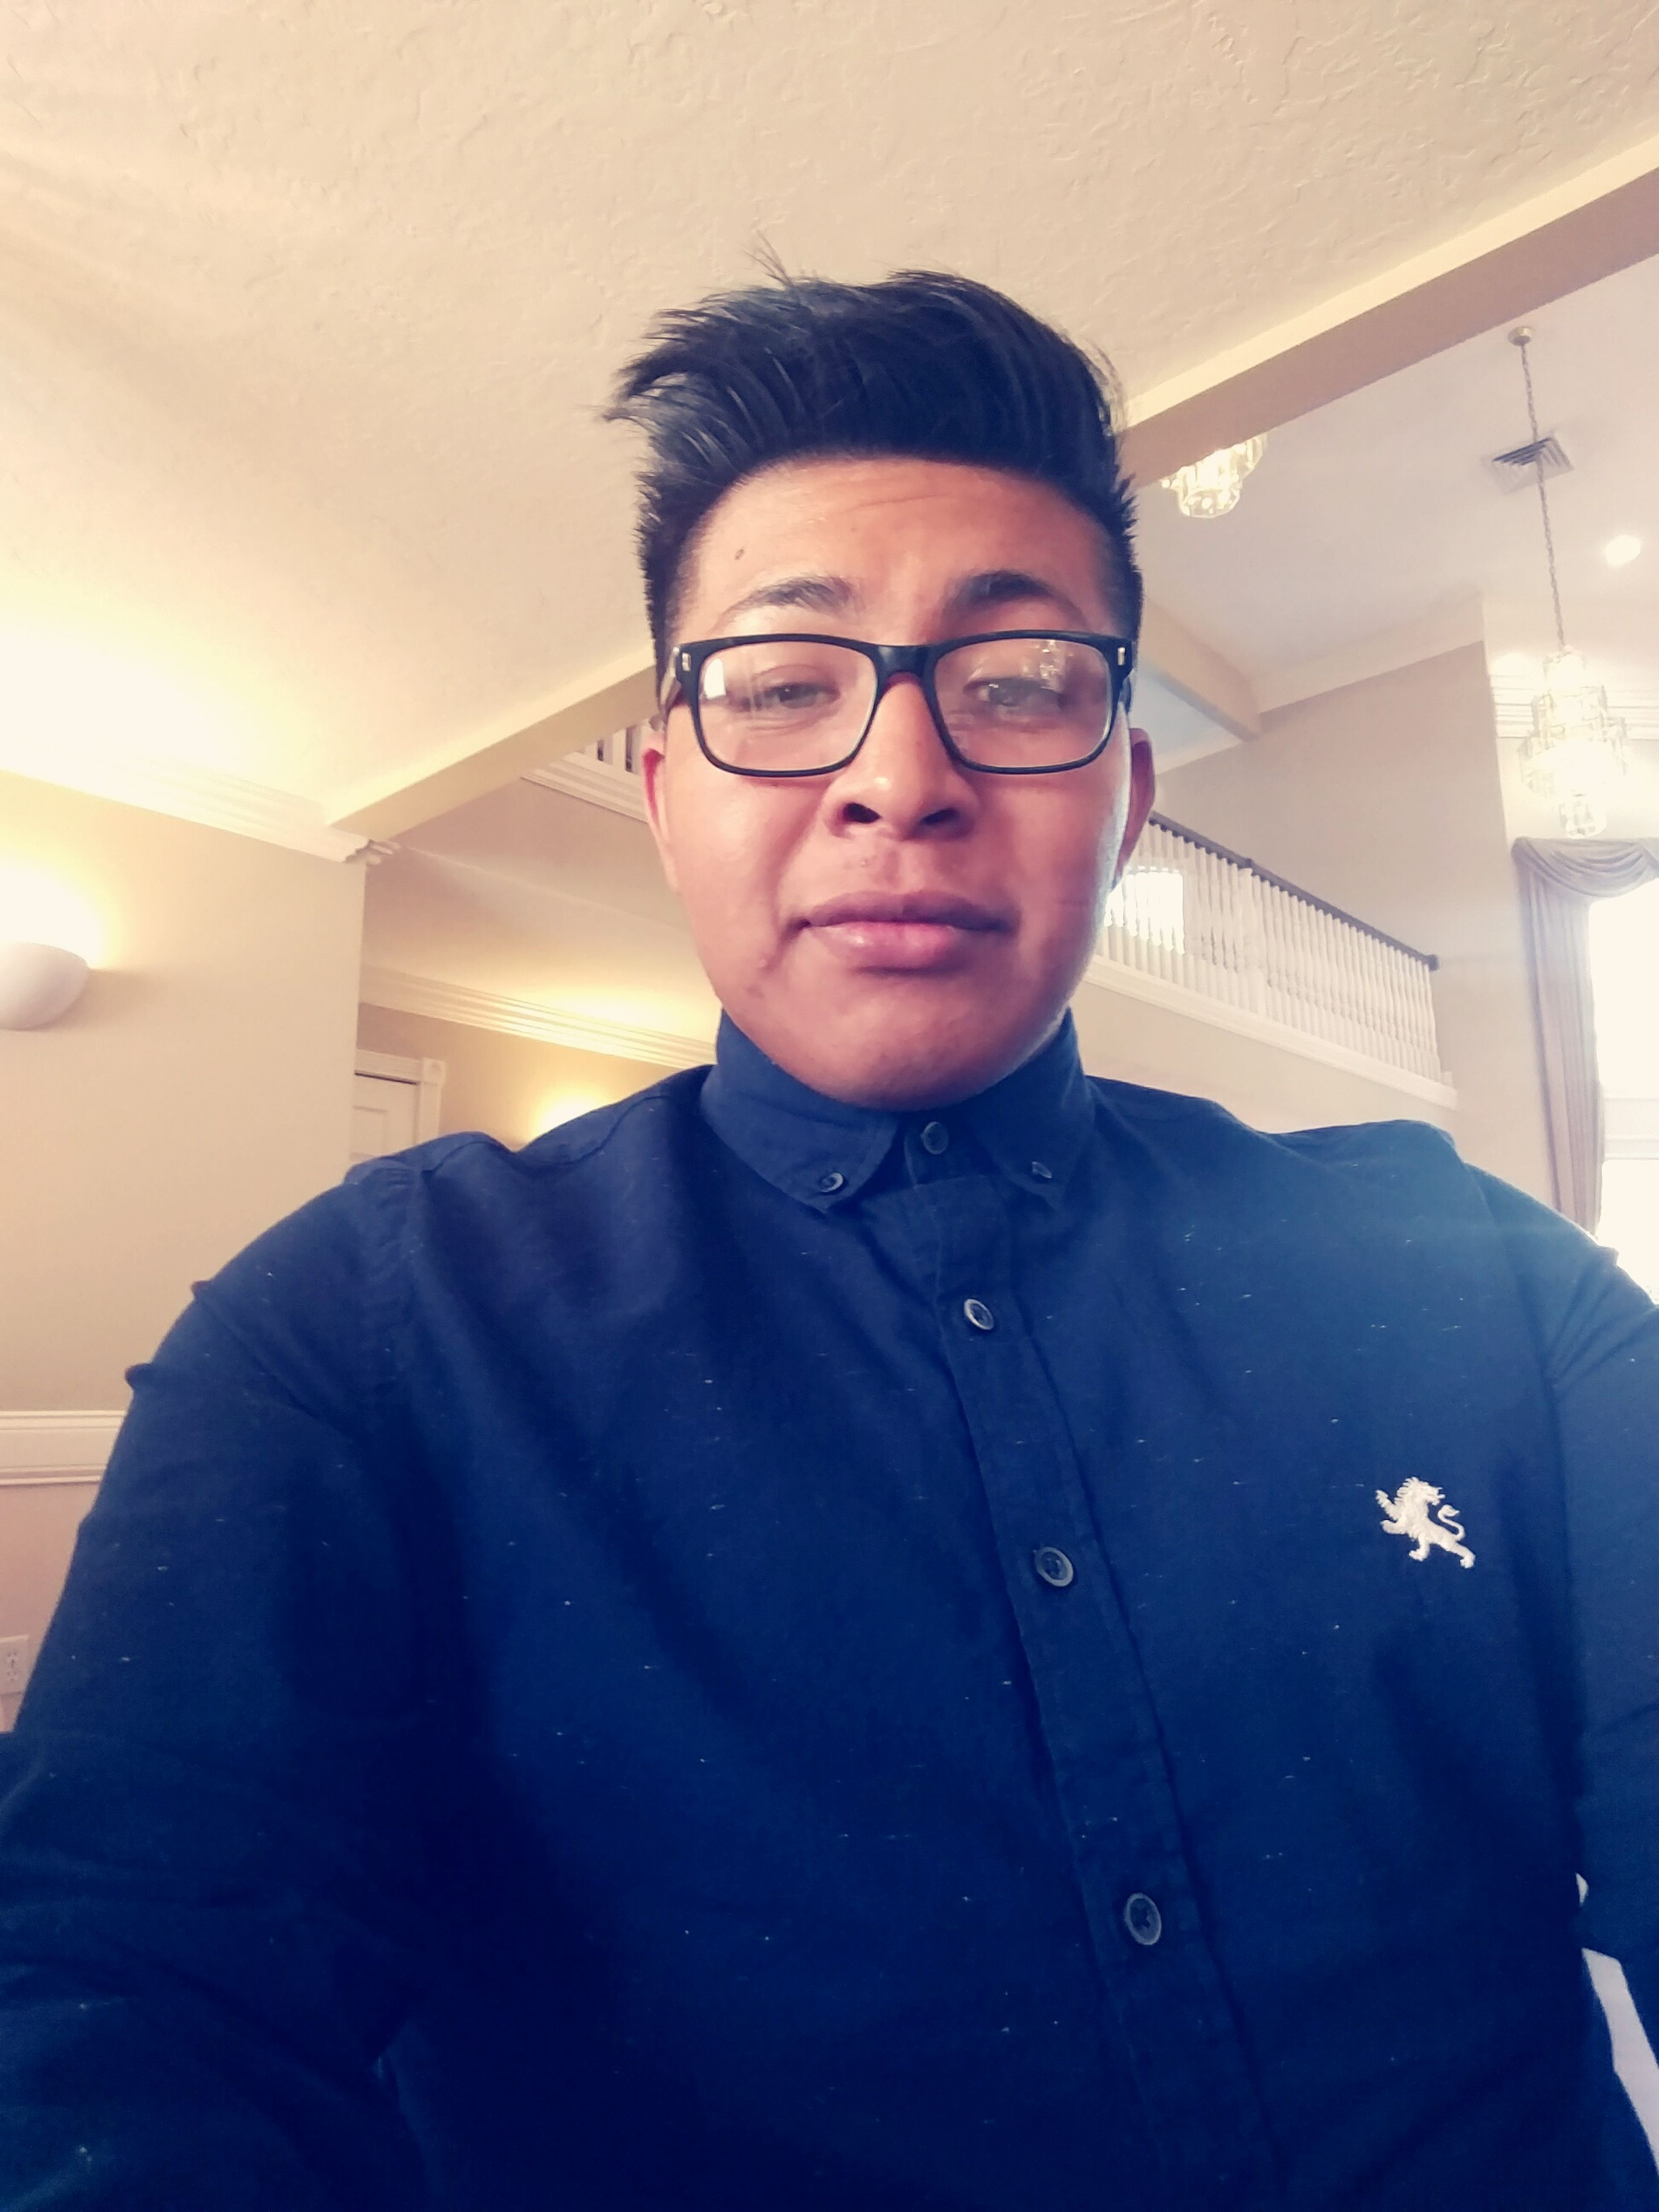 portrait, person, lifestyles, front view, casual clothing, leisure activity, handsome, headshot, eyeglasses, confidence, jacket, toothy smile